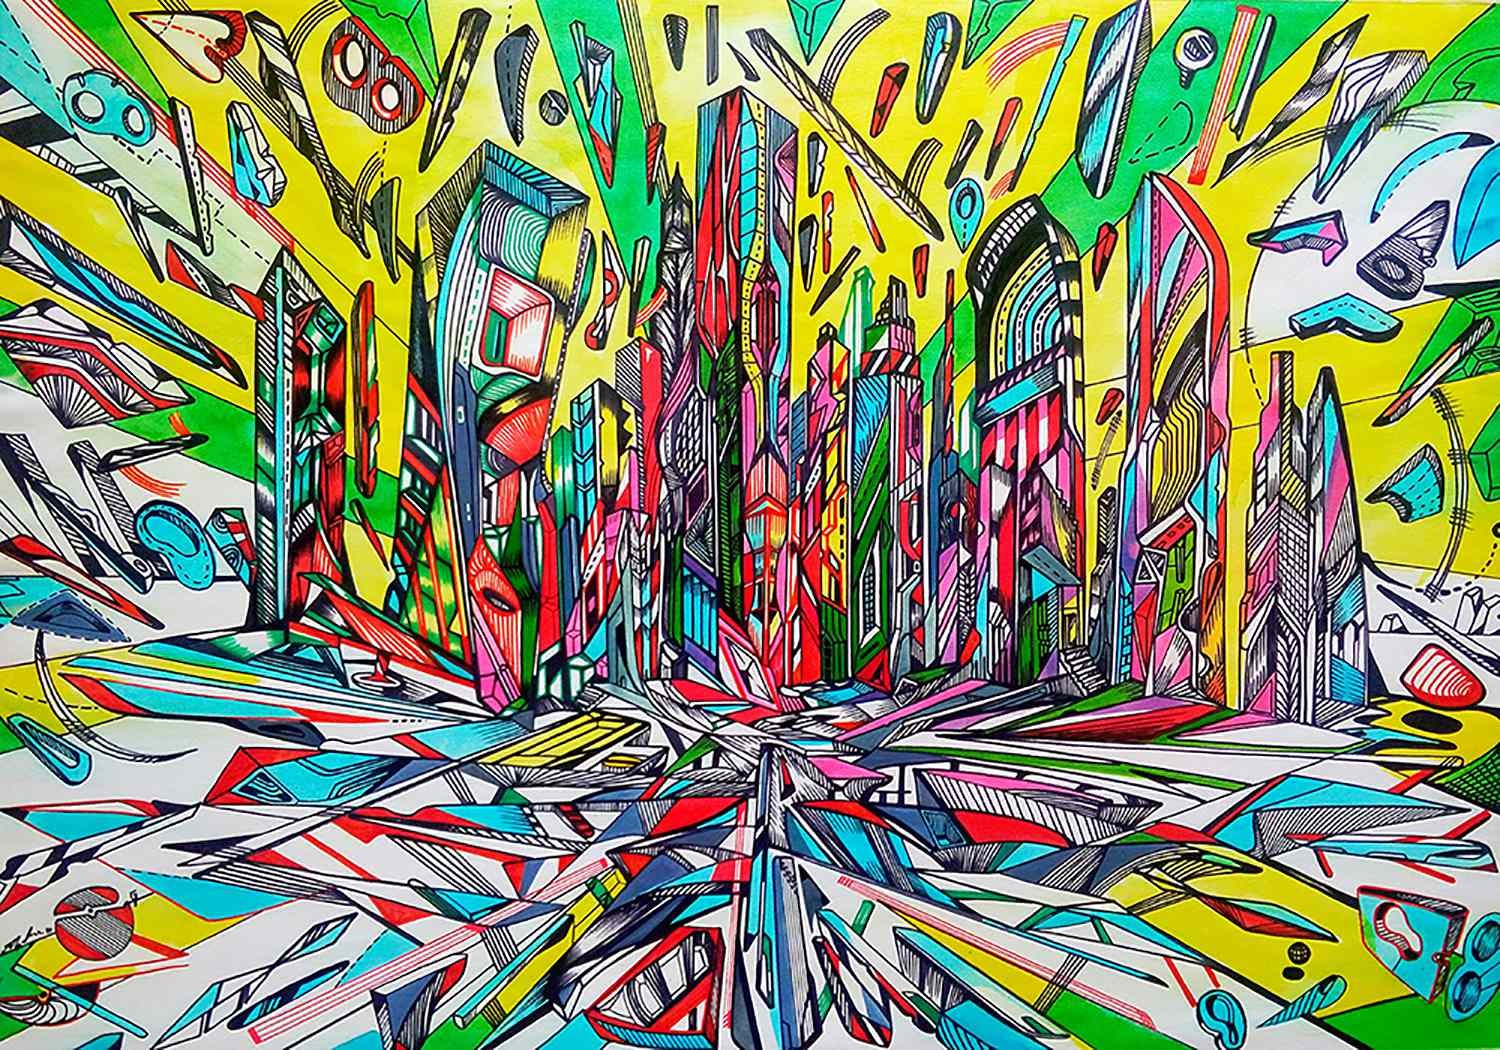 Let the rivers run, acrylic painting of the city by Marko Gavrilovic